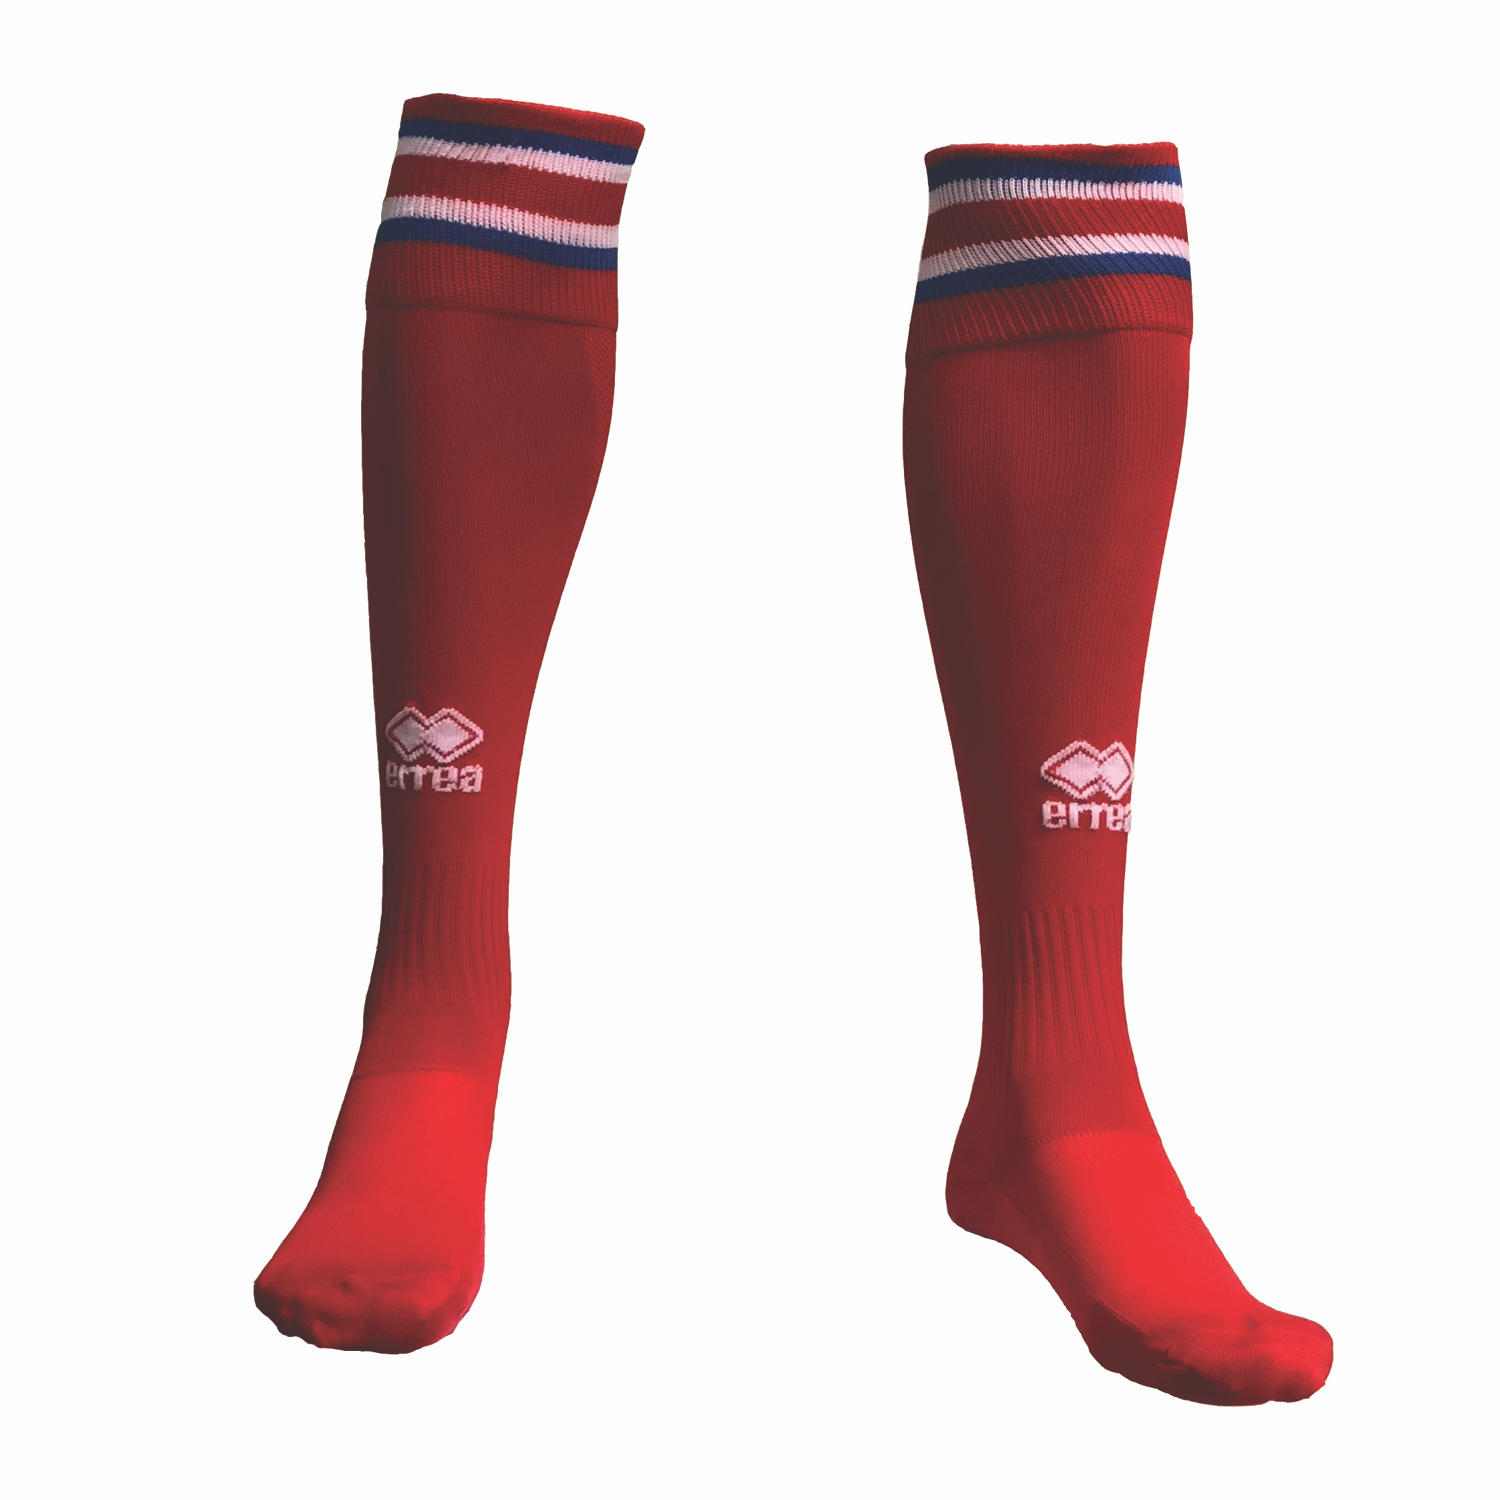 KSÍ - Iceland National Football Team Goalkeeper Socks 2018 - 2020